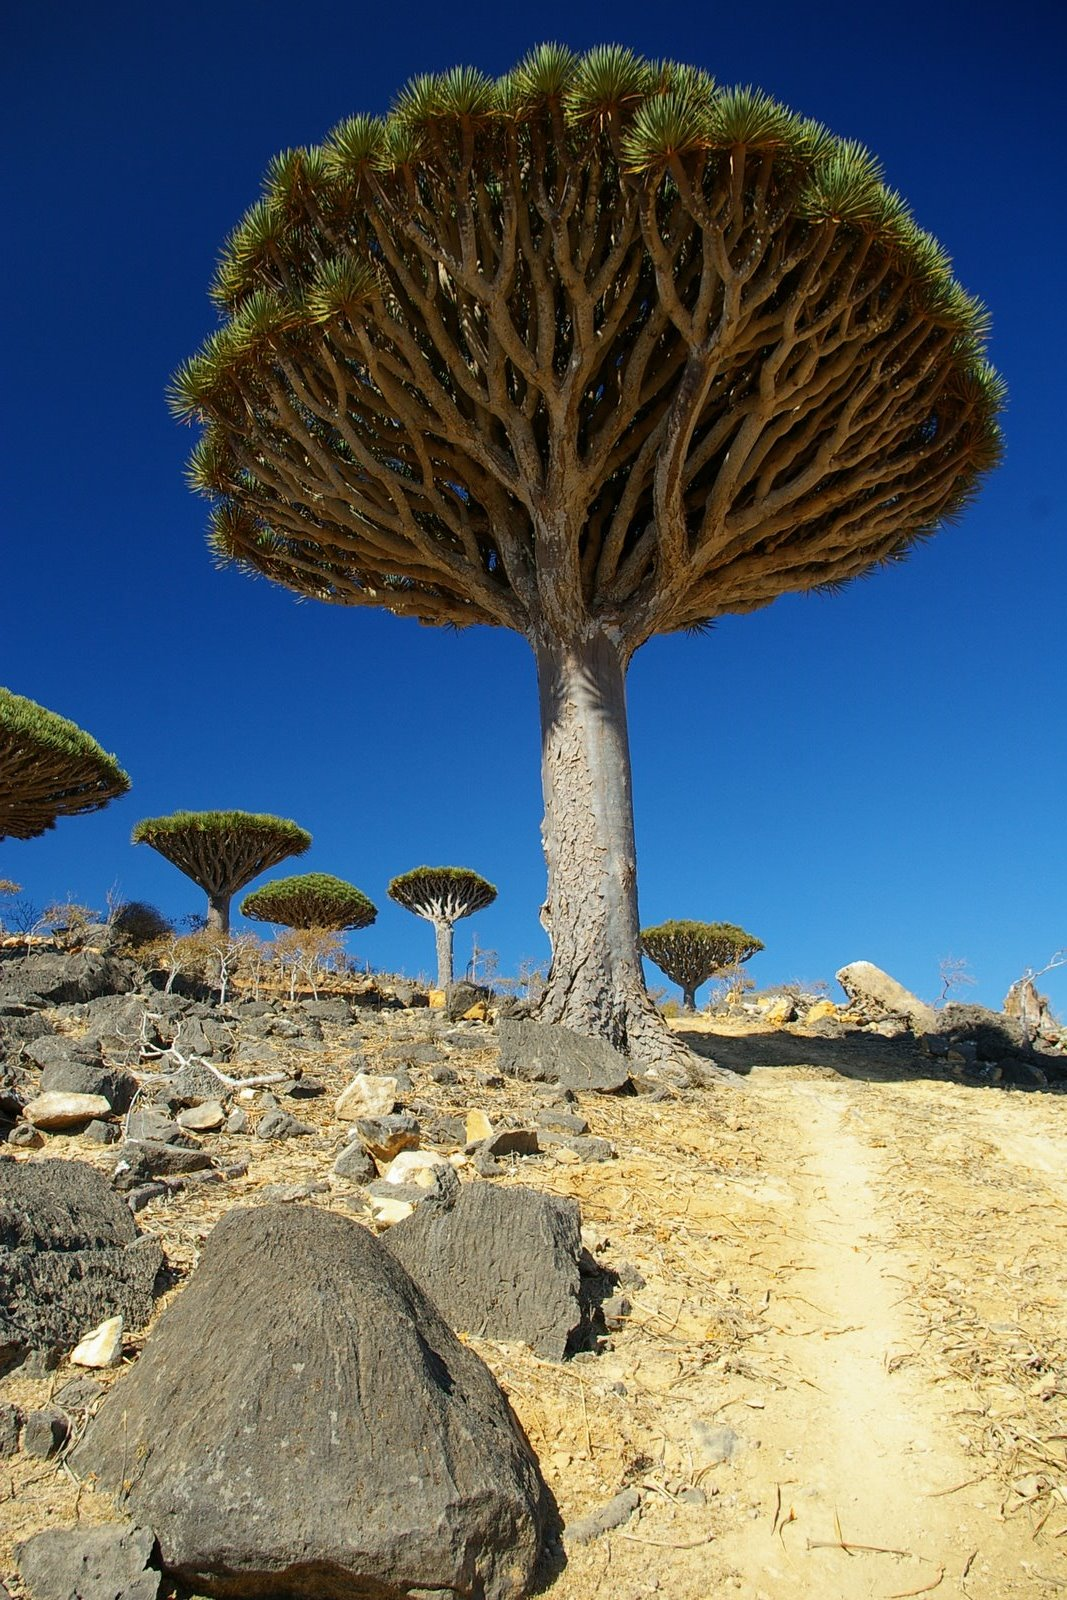 Biodiversity Under Threat At Yemeni 'Alien-Island'